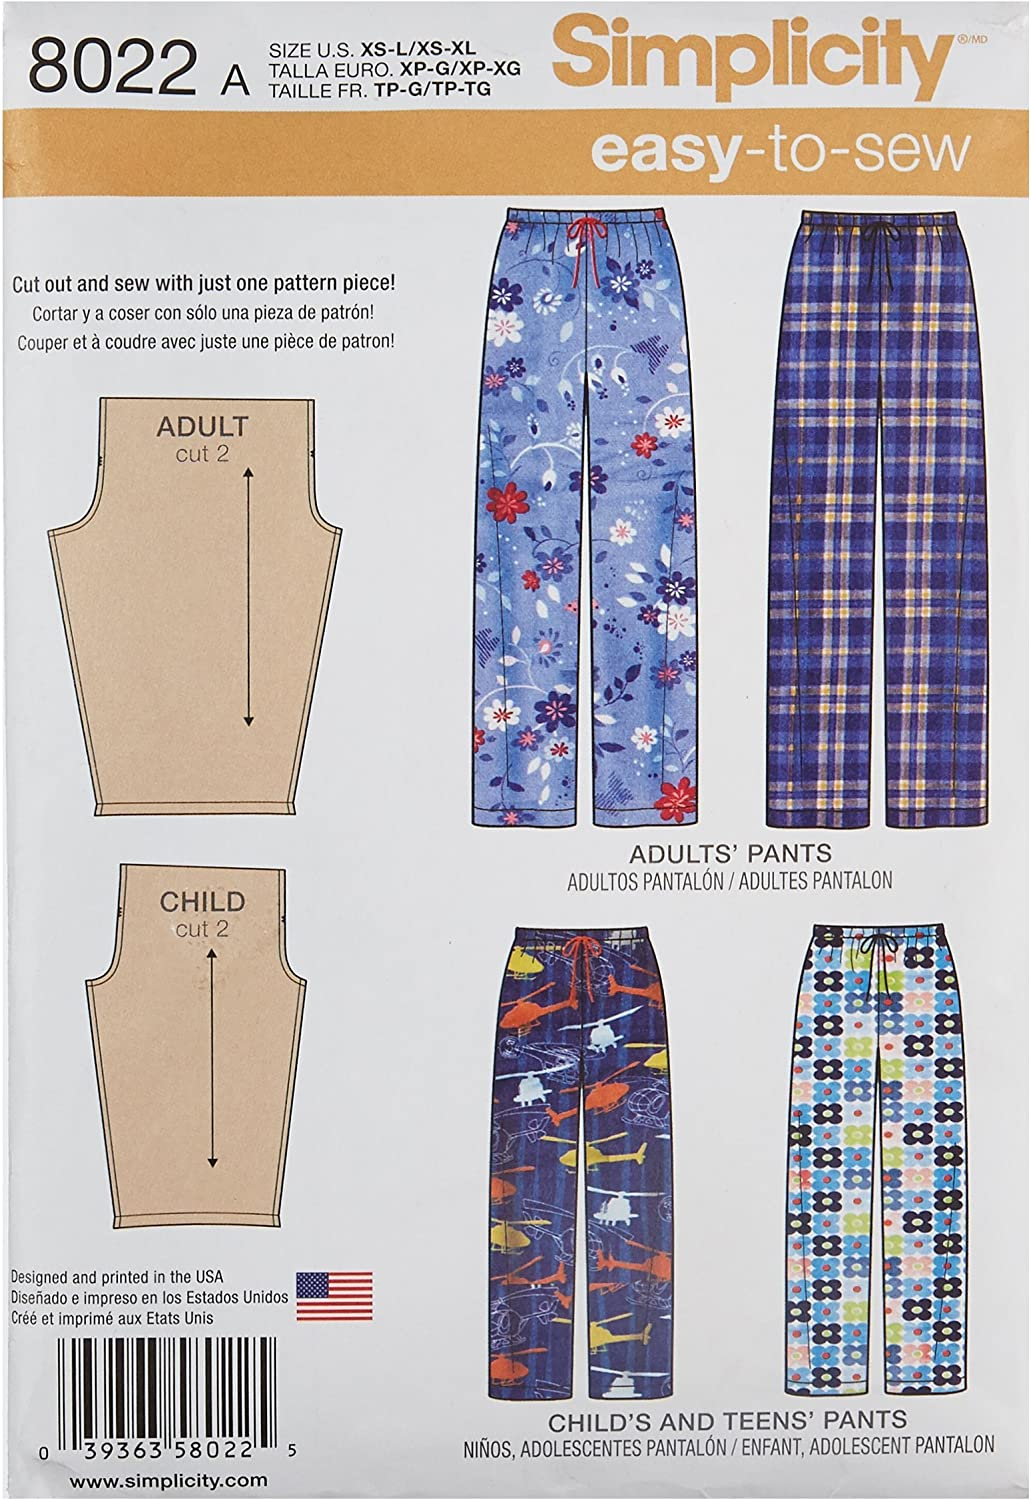 Simplicity Creative Patterns US8022A Childs 8022 Renewed Xs - L//Xs - XL Teens and Adults Pants Size: A